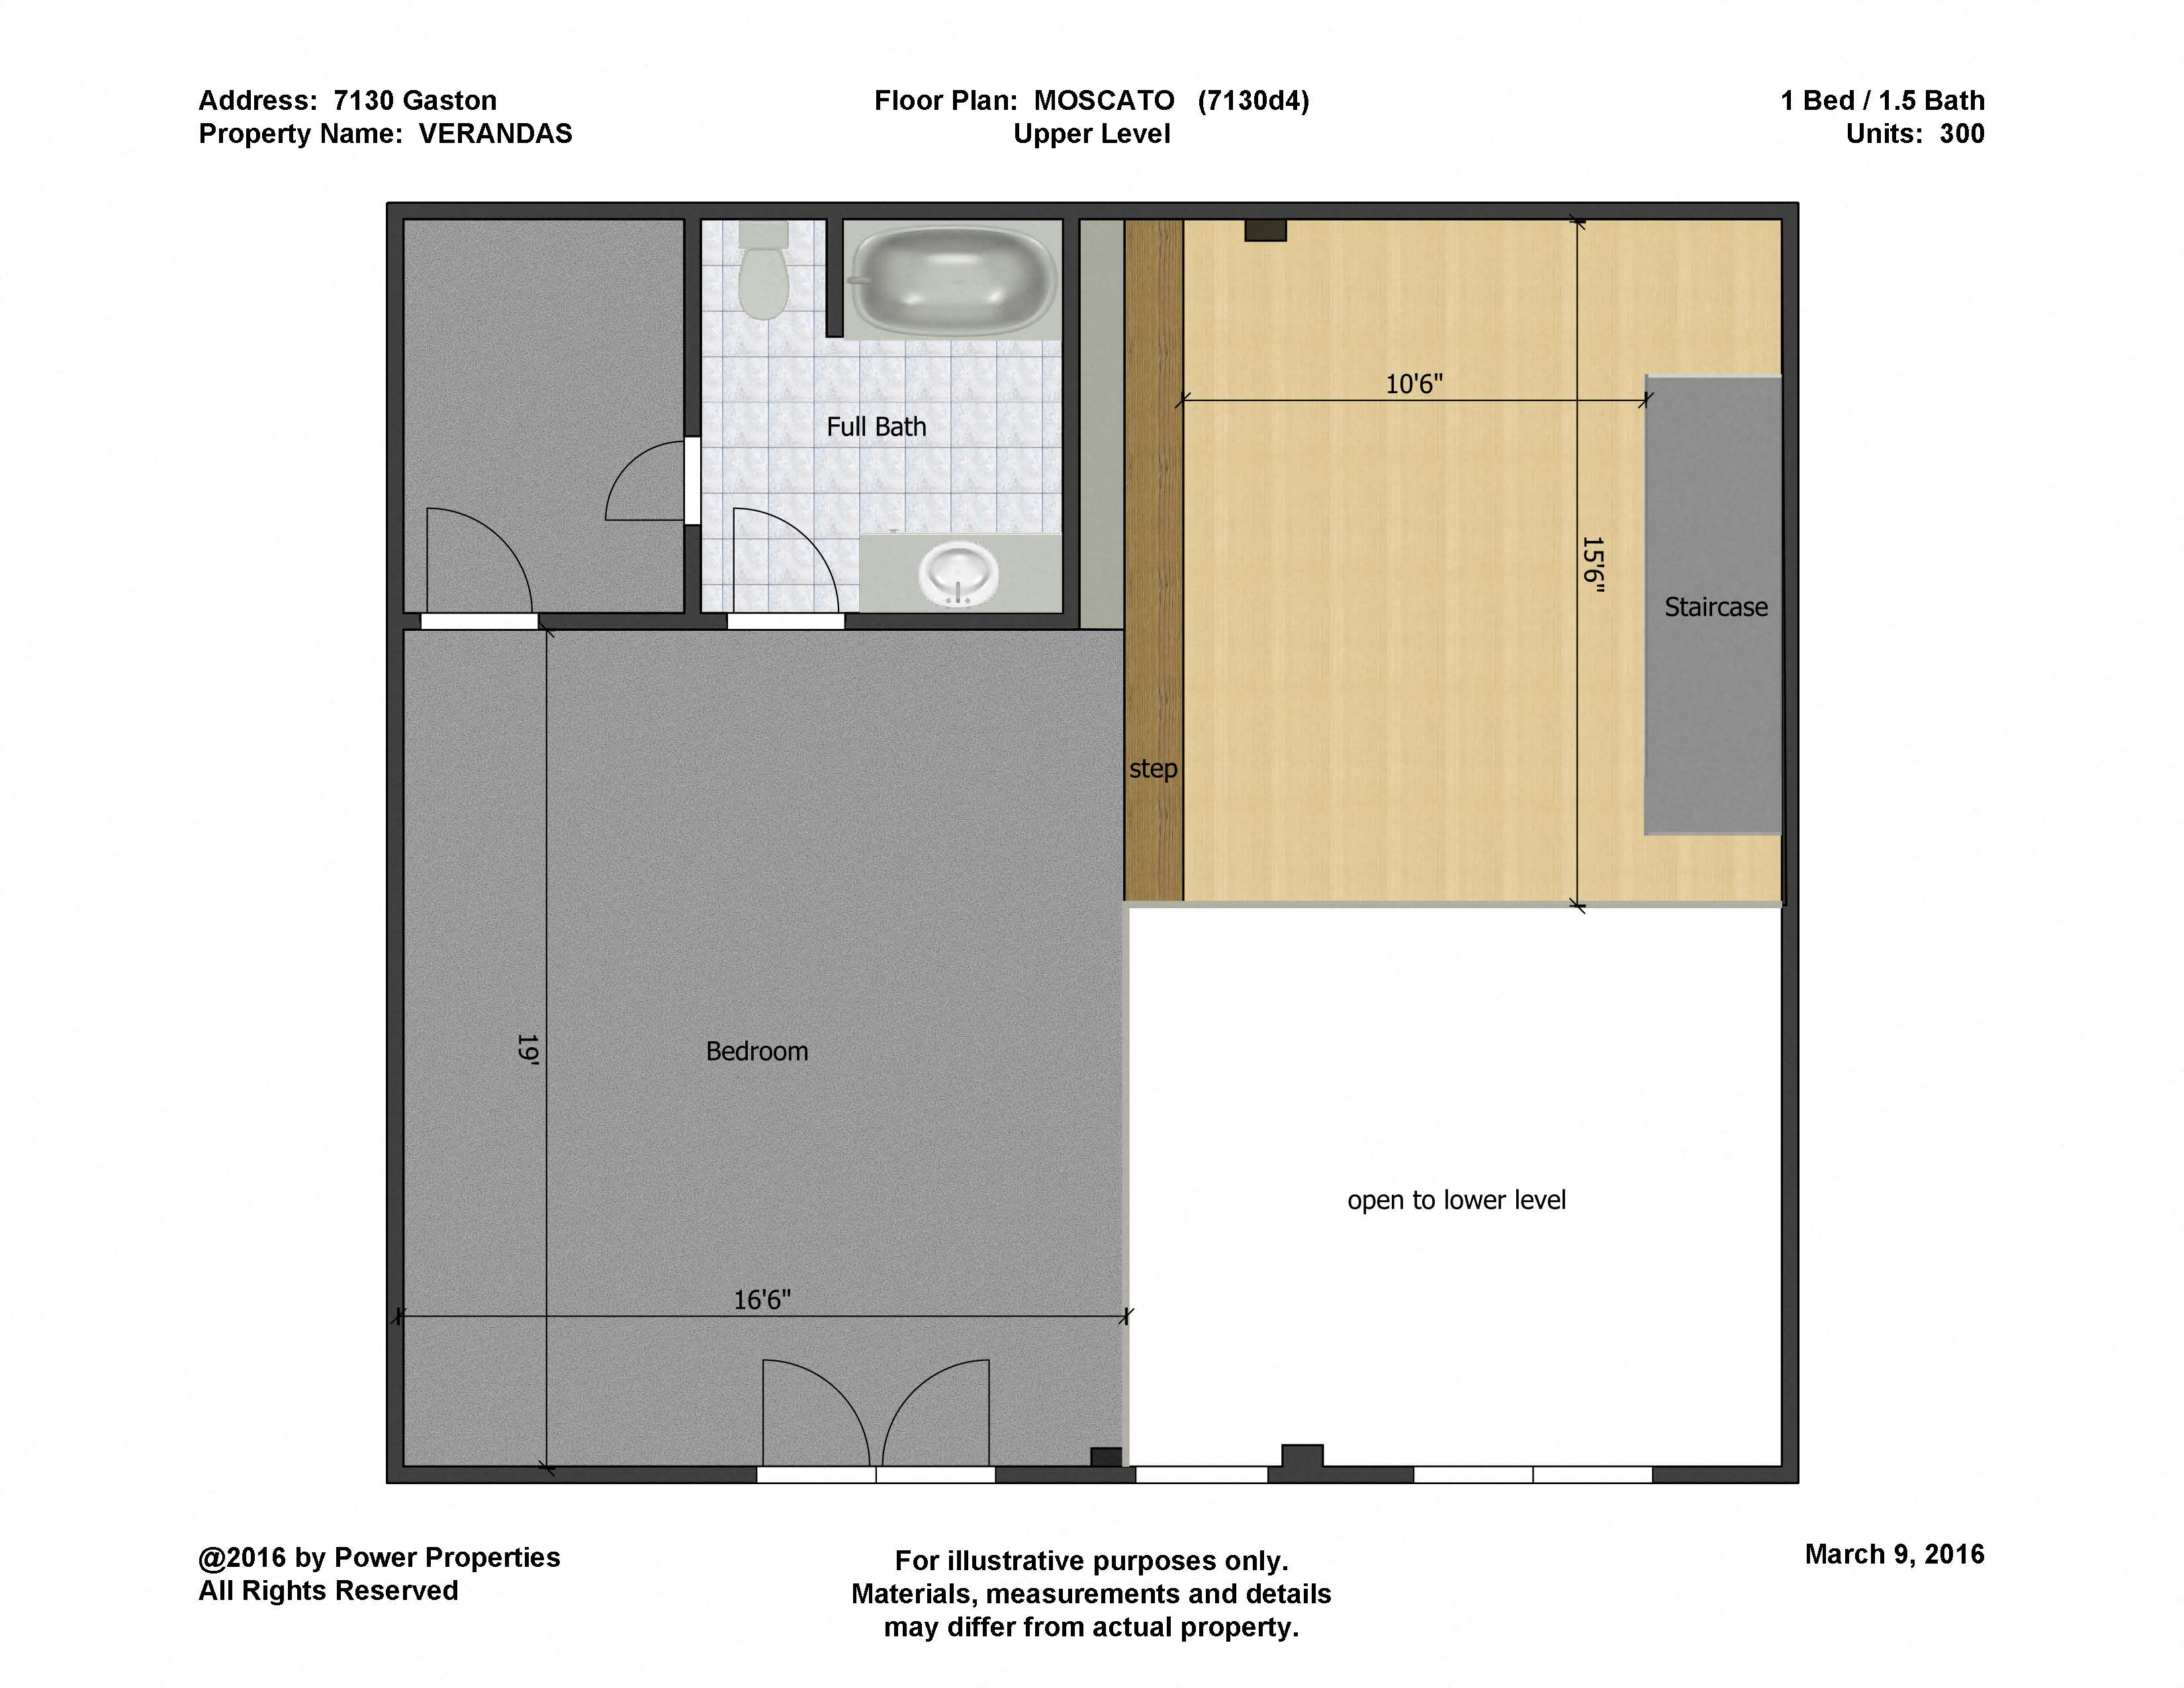 Plan Veranda Floor Plans Of Verandah Flats In Dallas Tx